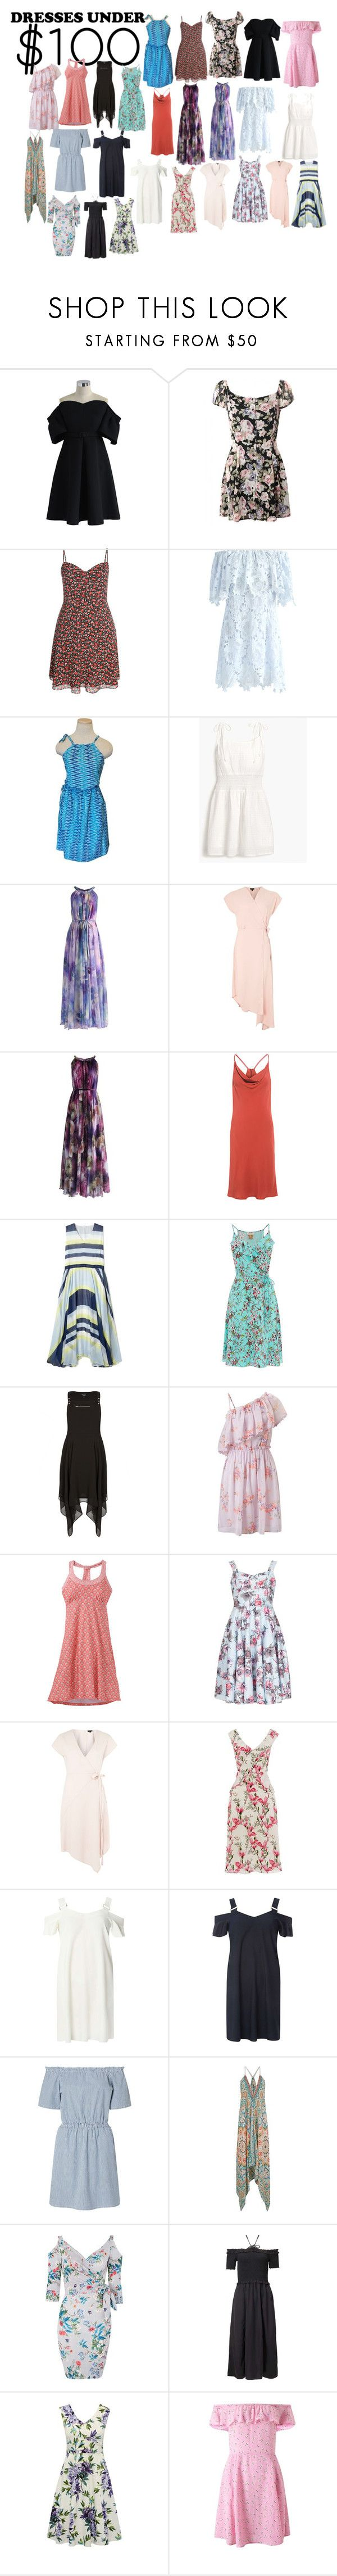 """""""Summer Dresses <$100"""" by starzyluv ❤ liked on Polyvore featuring Chicwish, J.Crew, Topshop, C/MEO COLLECTIVE, Dash, Royal Worcester, City Chic, Miss Selfridge, prAna and Izabel London"""